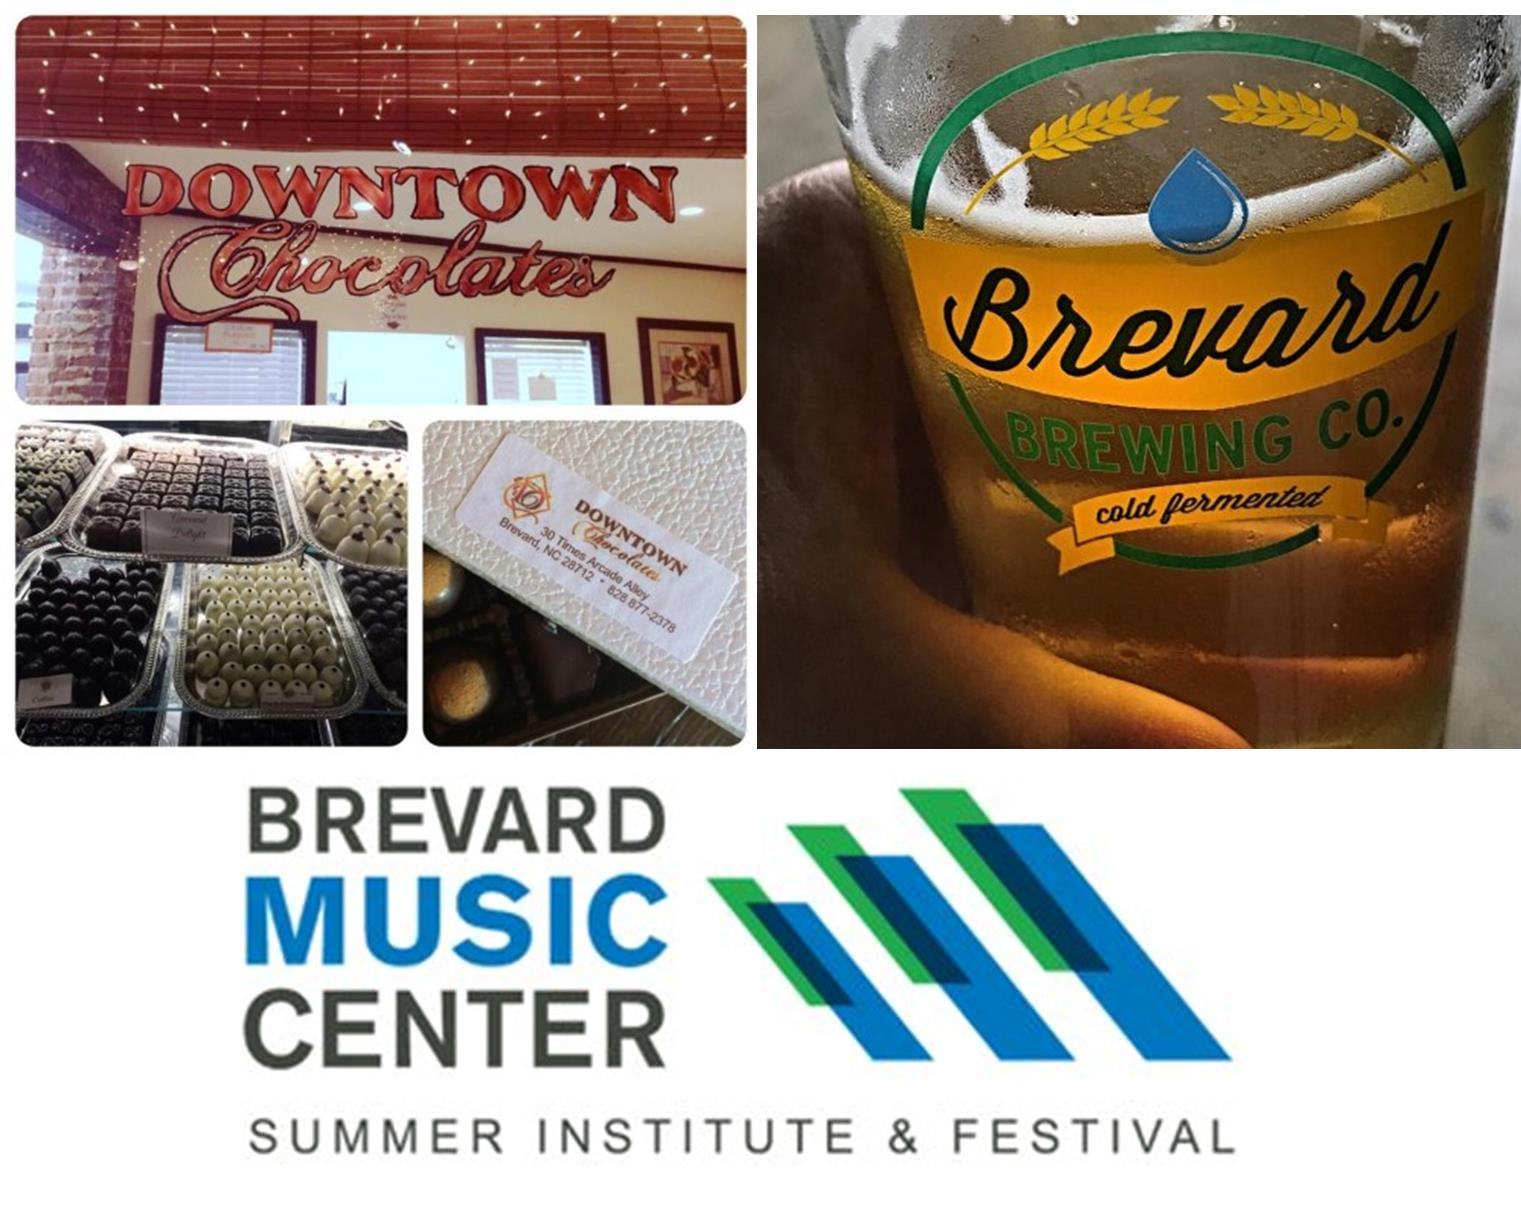 Brevard Music, Chocolate, and Brews